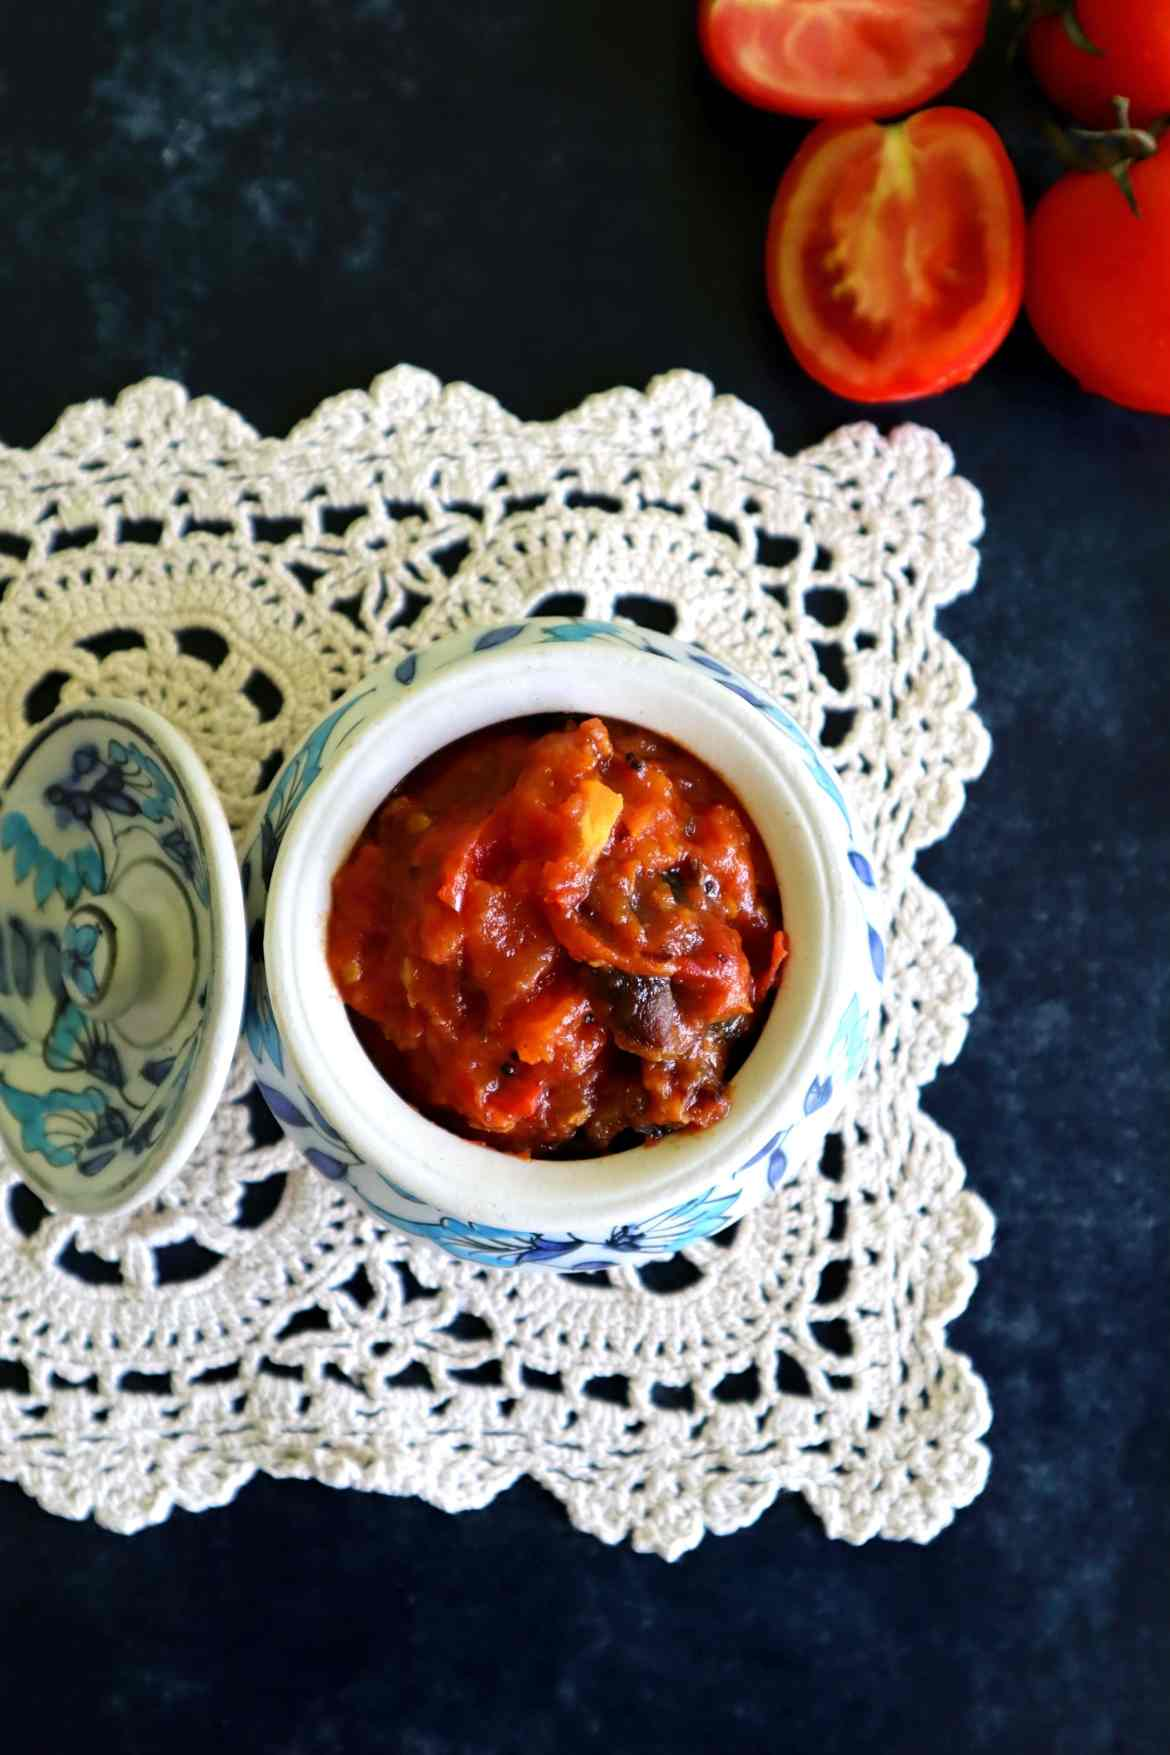 fromthecornertable, from the corner table, bengalifood, bengalirecipes, indianfood, tomato chutney